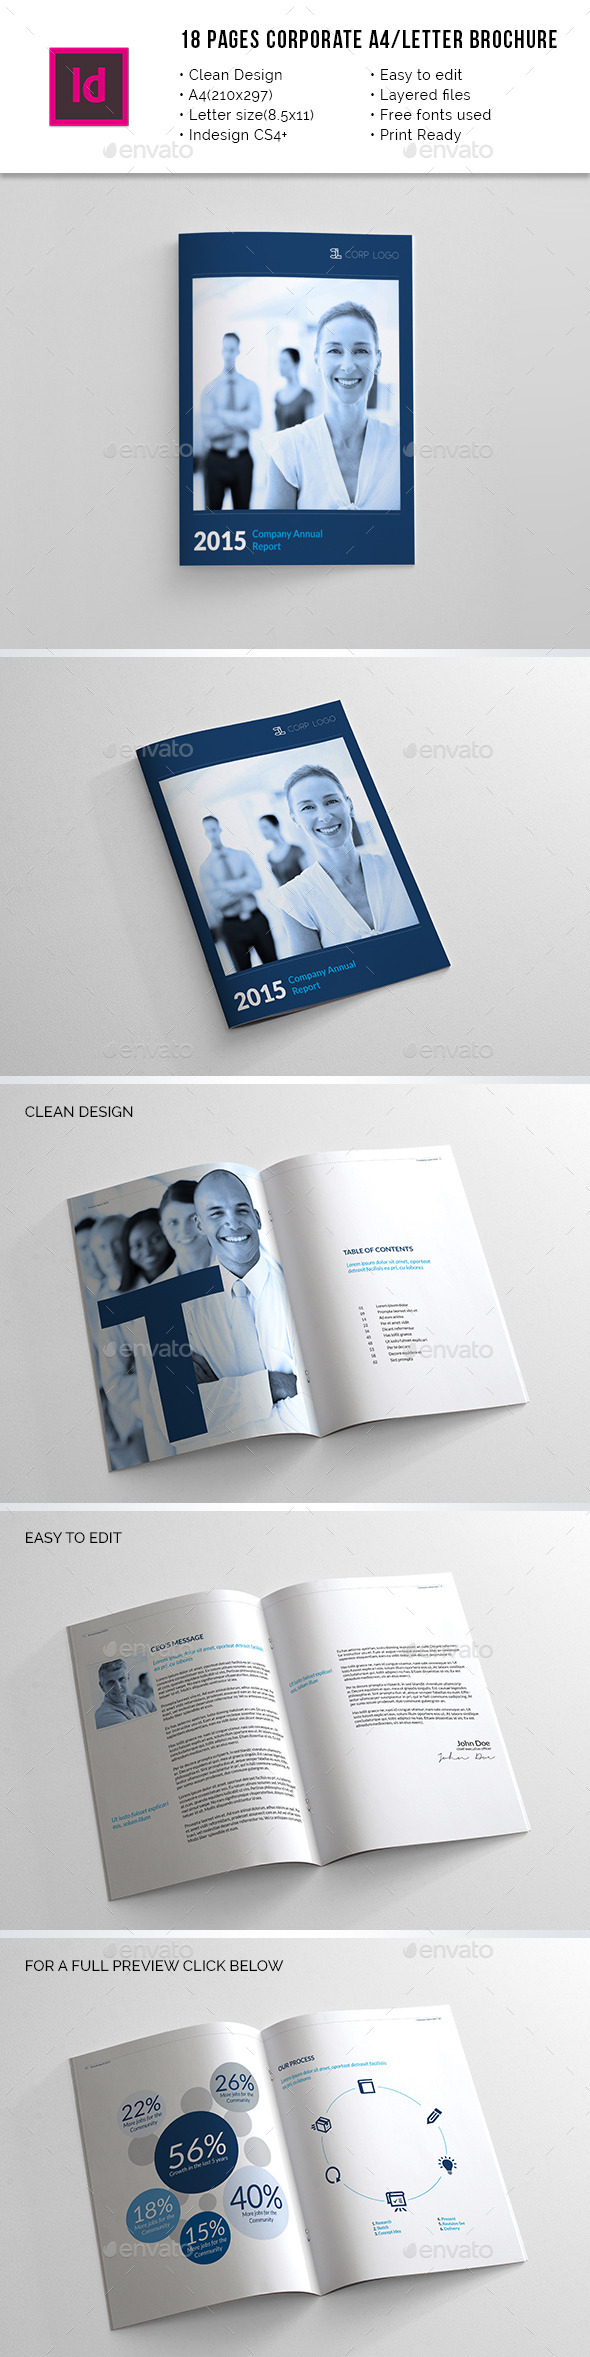 GraphicRiver 18 Pages Corporate A4 Letter Annual Report 10445046